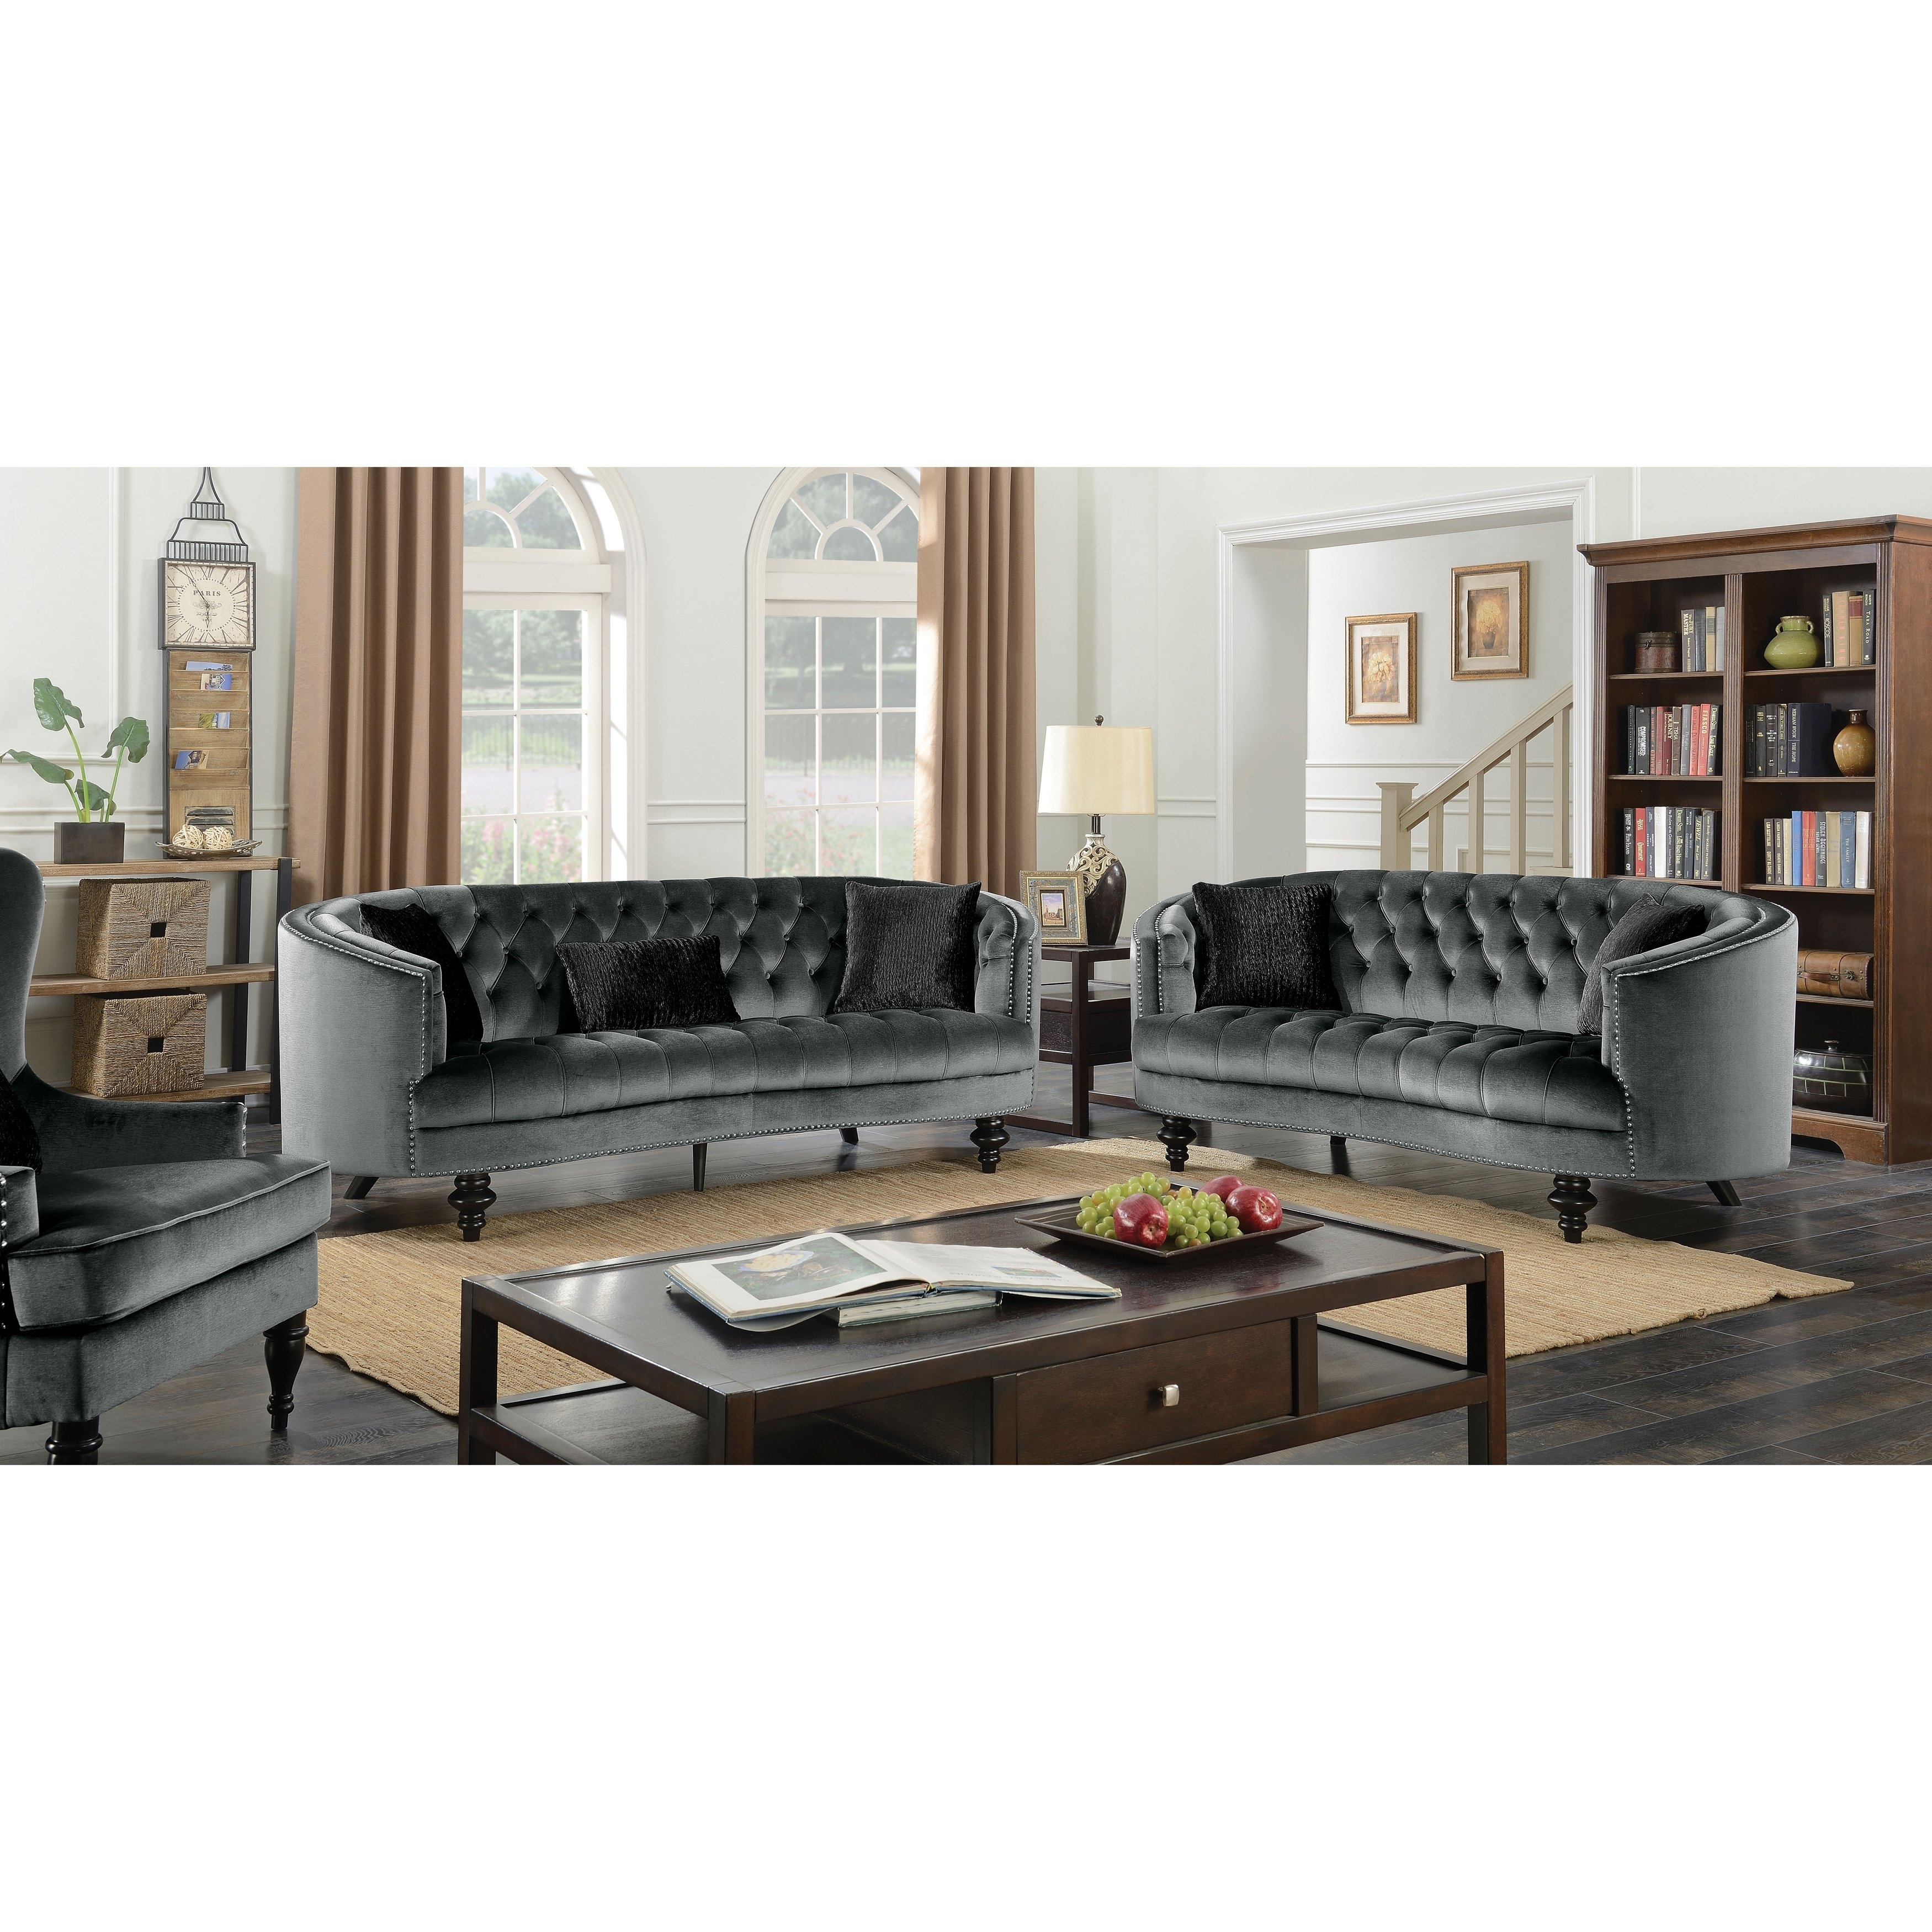 Leather Sofas London Ont: 25 Best Collection Of Glamour Ii 3 Piece Sectionals